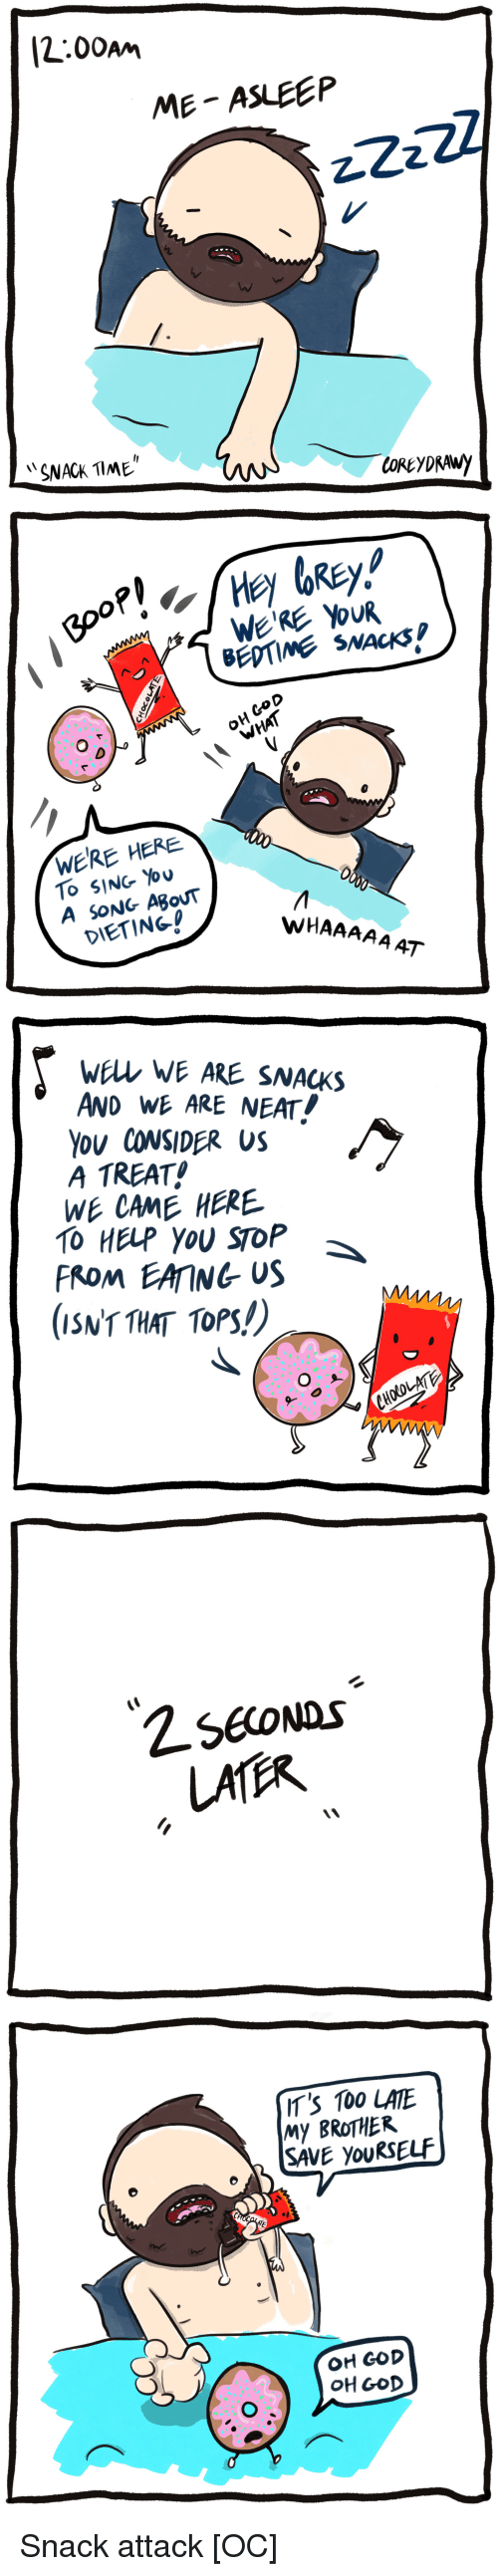 cod: [2:00am  ME ASLEEP  SNACK TlME   BEDTIME SNACKS  O D  OH CoD  WERE HERE  To SING You  A SONG ABouT  DIETING!  WHAAAAA AT   wELL WE ARE SNACKS  AND WE ARE NEAT!  Ou CONSIDER US  A TREAT  WE CAME HERE  TO HELP YOU SToP  FROM EAING US  (ISNT THAT TOPS!)   IT'S 100 LATE  My BROTHER  SAVE youRSELF  OH GOD  OH GOD Snack attack [OC]